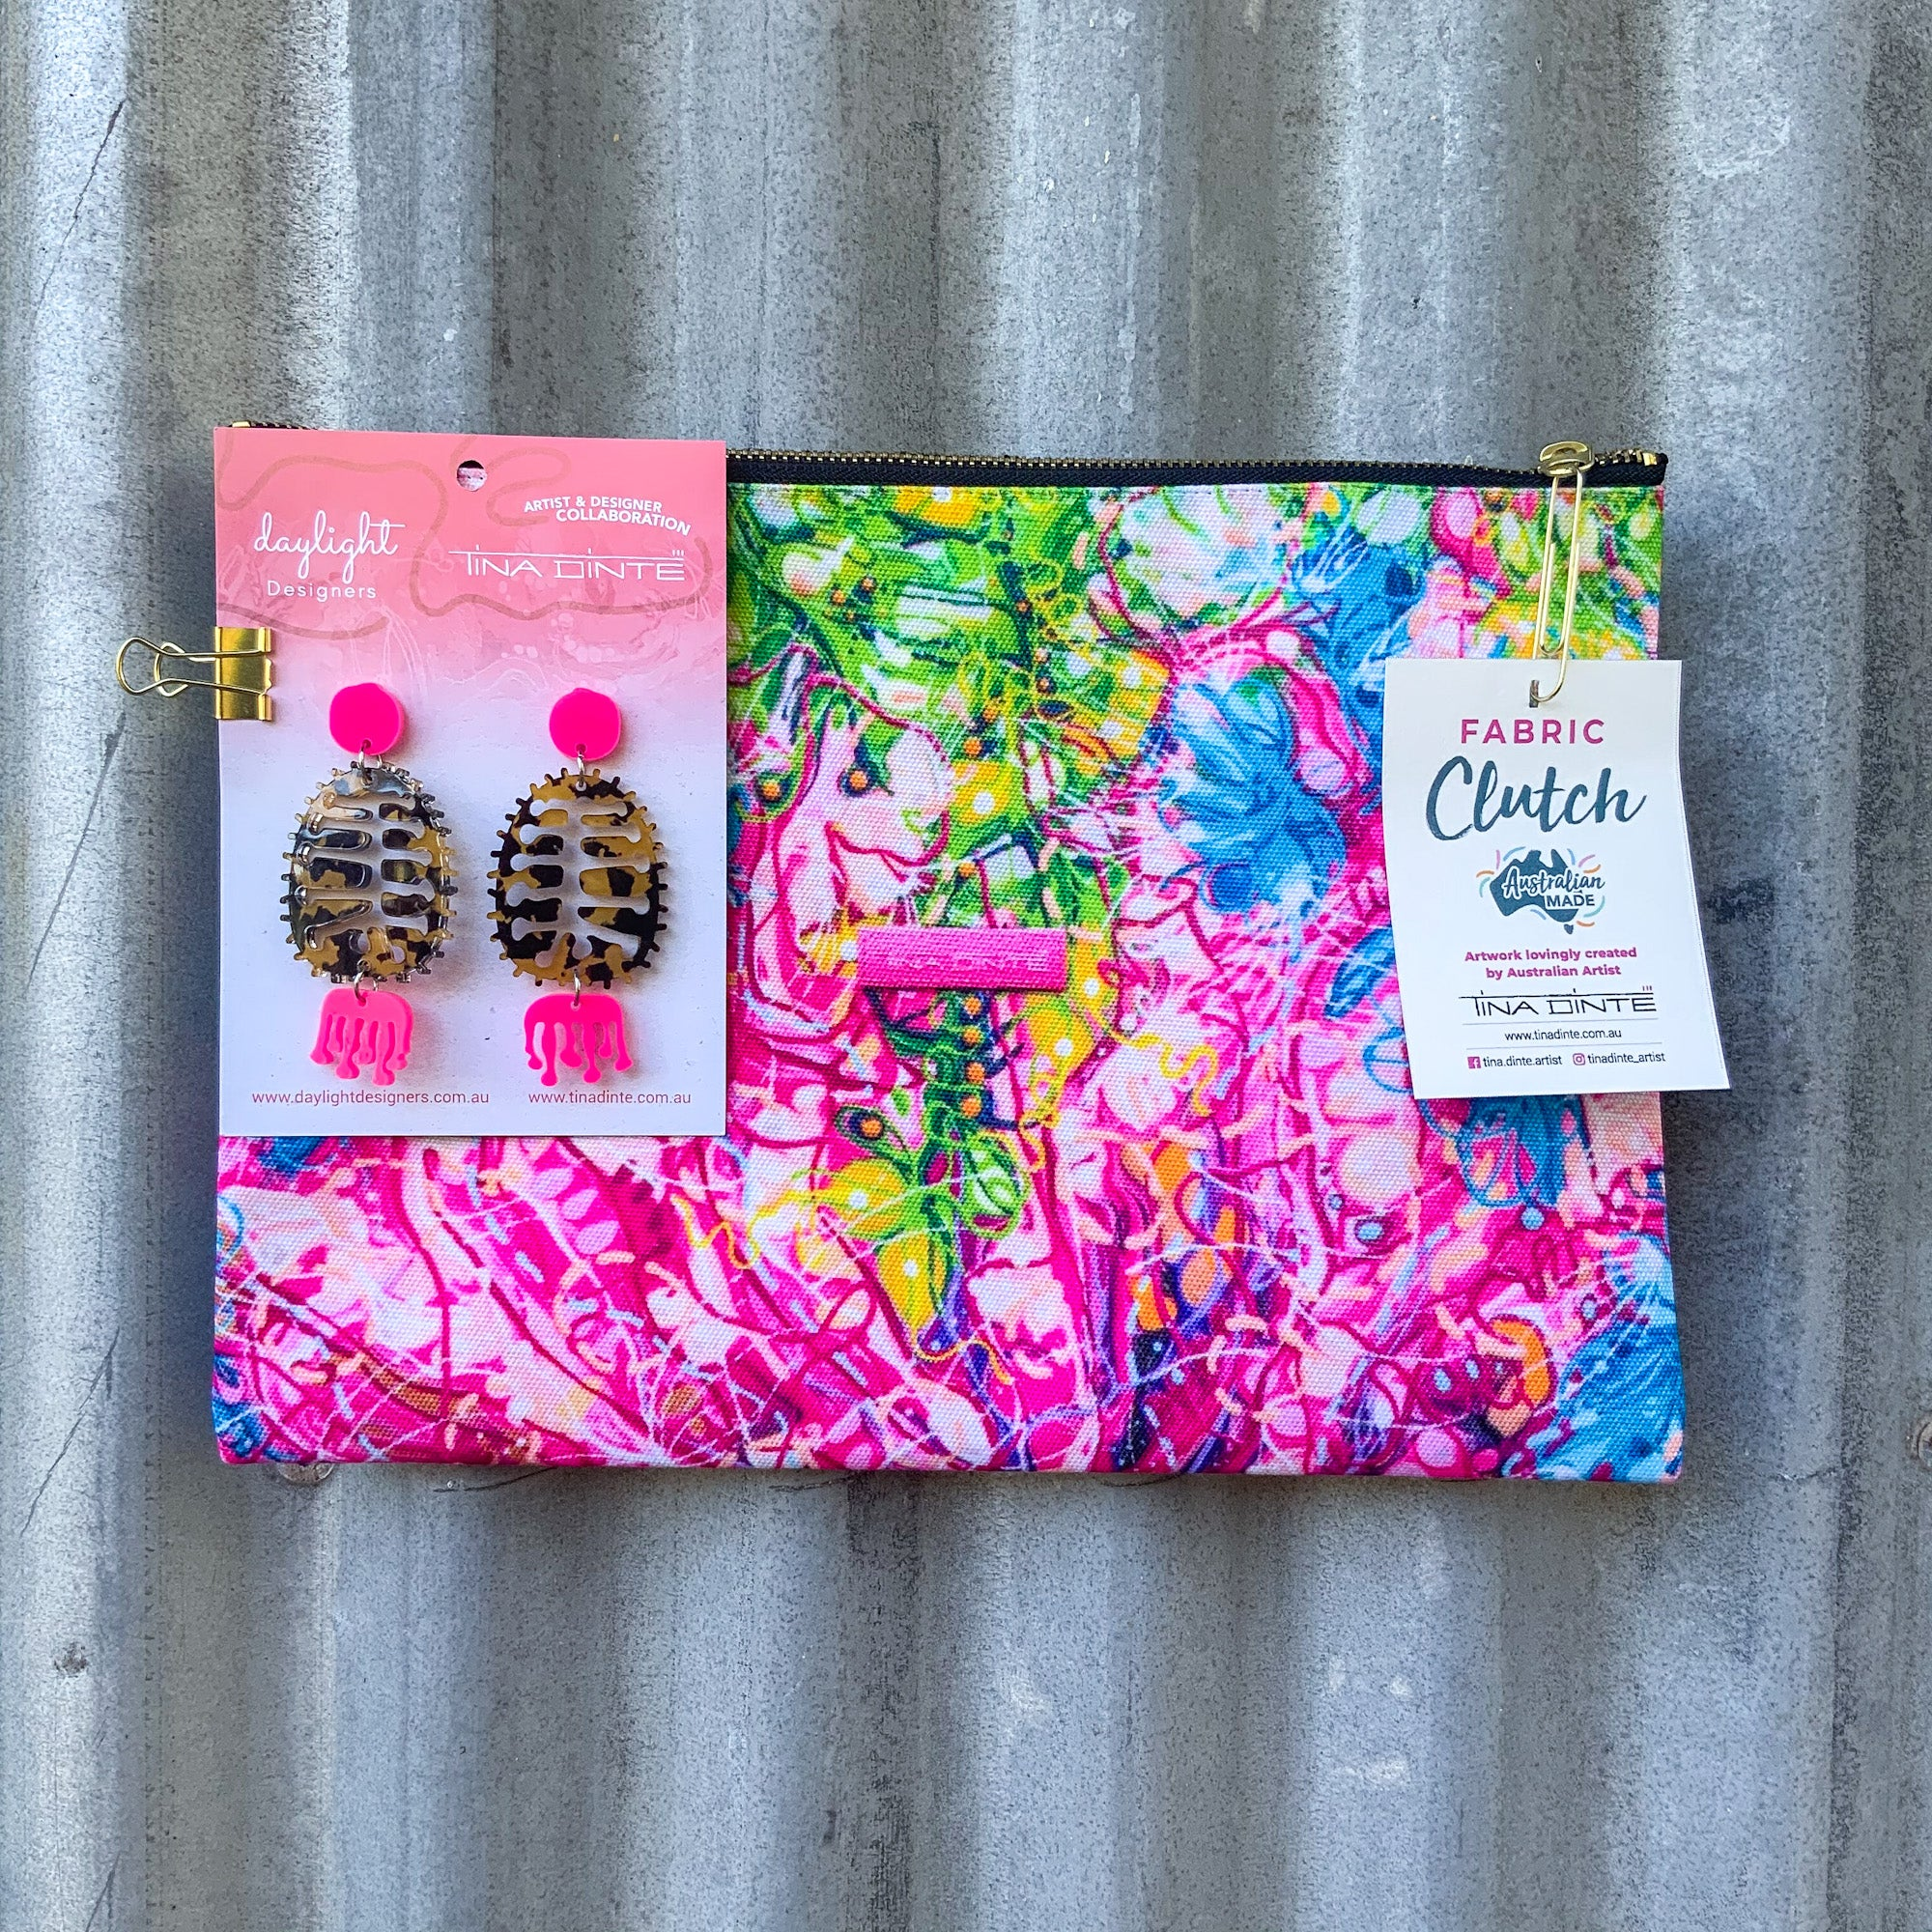 GIFT PACK / Banksia Cuneata Fabric Clutch & Banksia Earrings